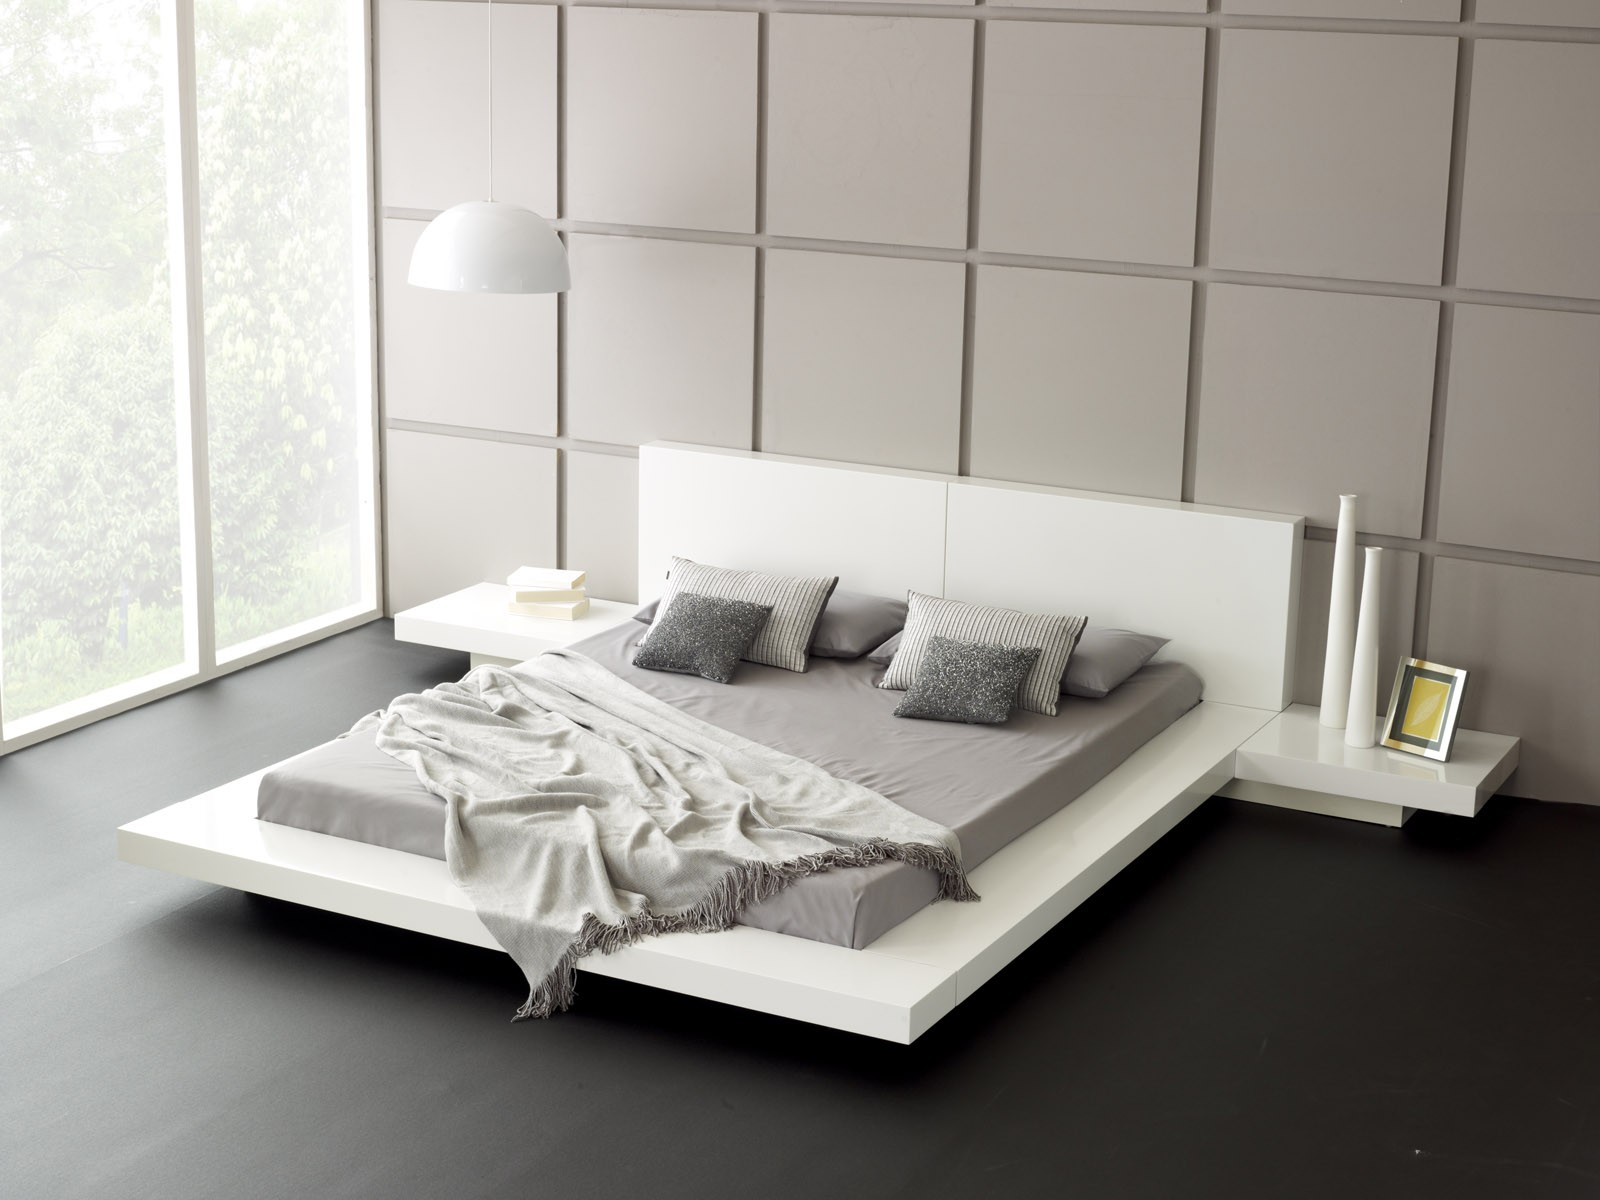 white wooden bed frames low profile queen bed square panel wall - Low Profile Twin Bed Frame